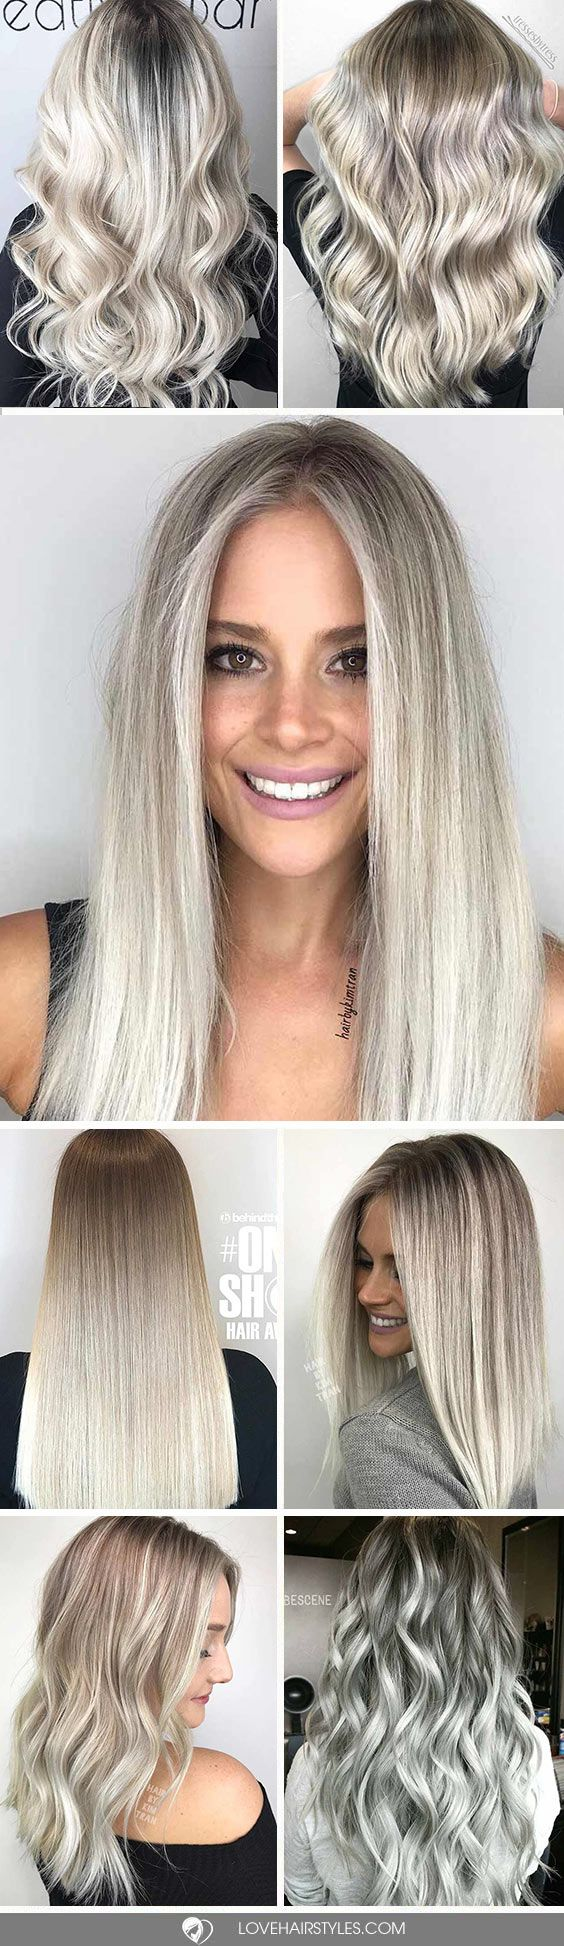 A platinum hair color is literally the lightest among all the other blonde hues. The great news is that such hair shades will compliment any eye color and fair to medium complexion. Plus, you can opt for platinum disregarding your age (the shades are quite mild) and hair length. #haircolor #platinumhair #platinumblonde #blondehighlights #blondebalayage